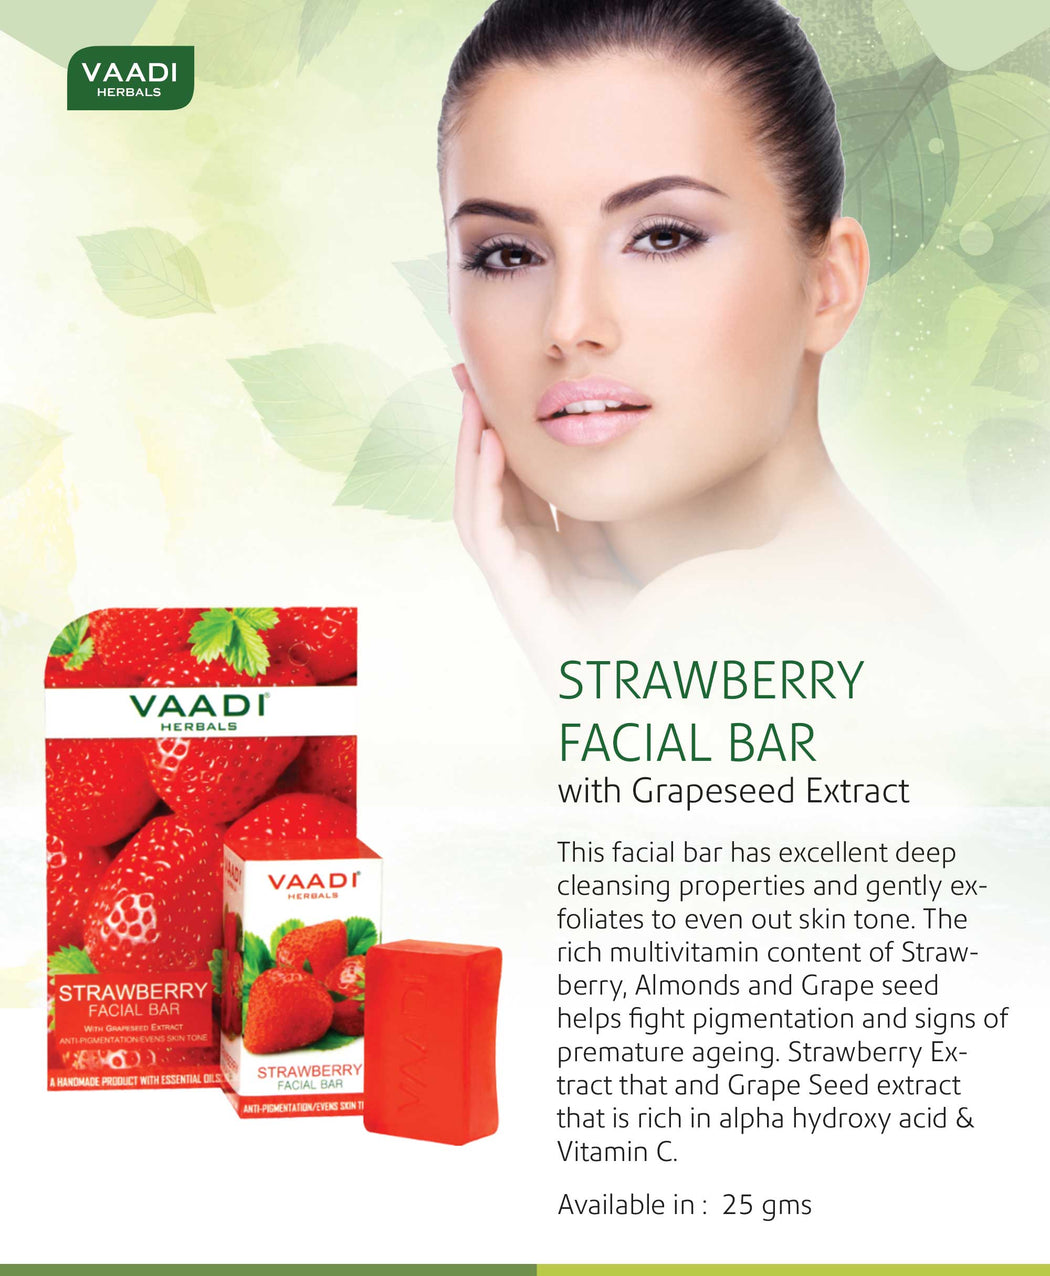 Organic Strawberry Facial Bar with Grapeseed Extract - Anti Ageing - Reduces Pigmentation (4 x 25 gms/0.9 oz)